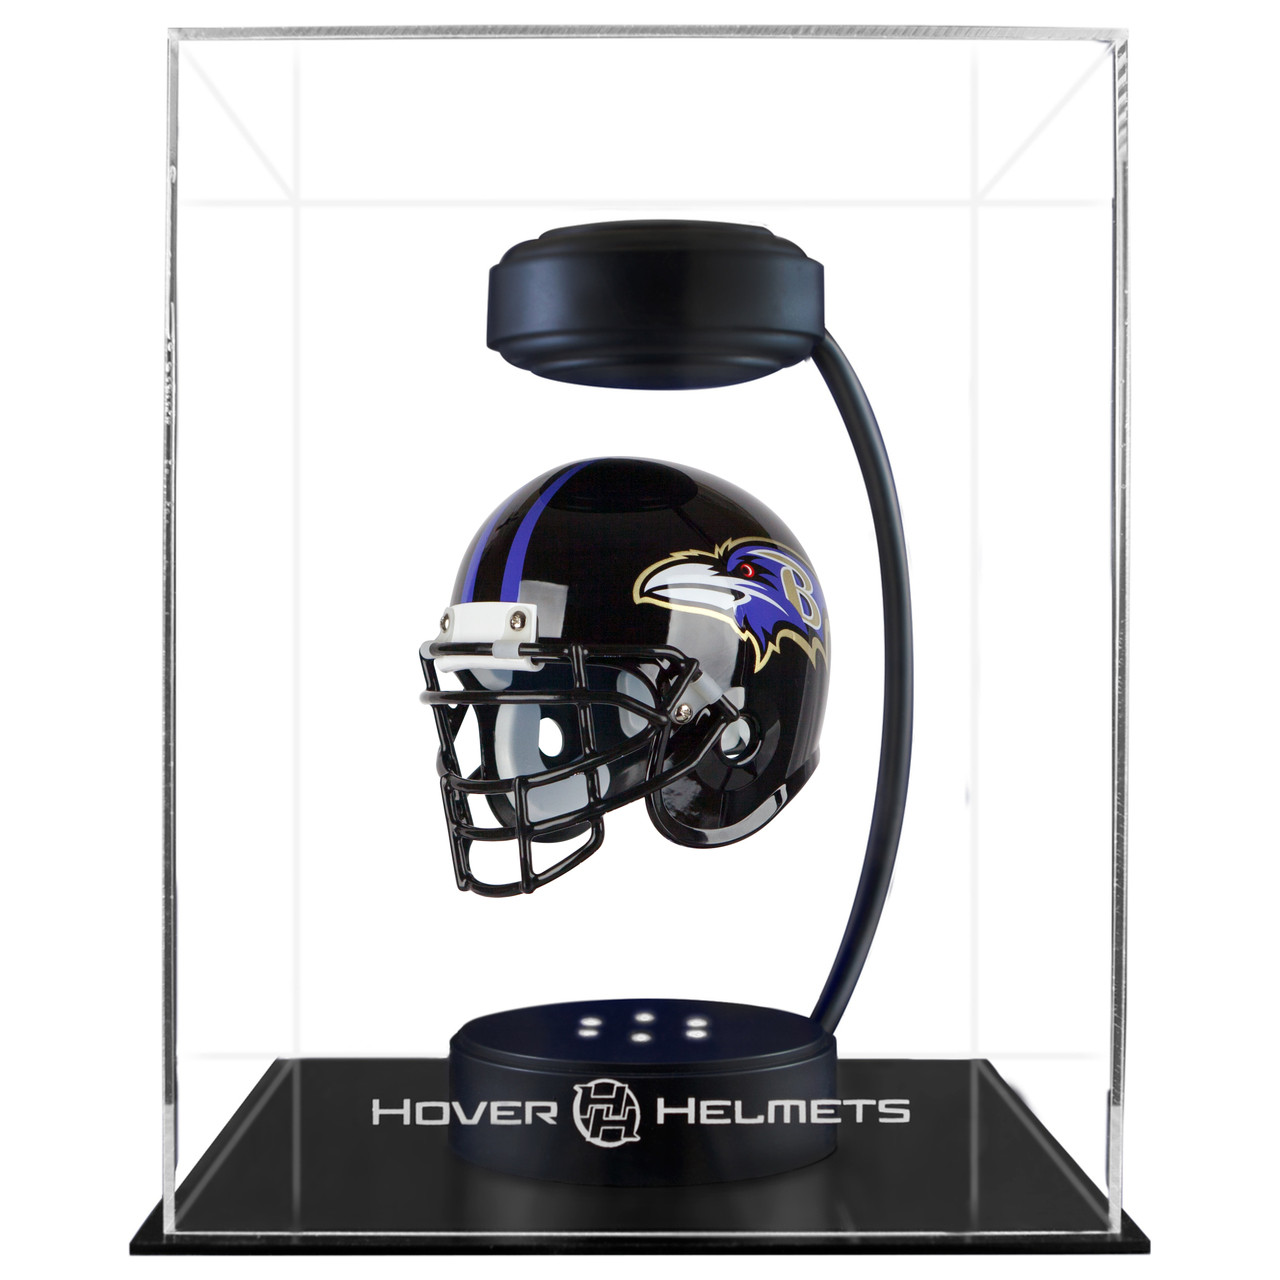 71b2dbcabbb ... Baltimore Ravens NFL Speed Riddell Mini Hover Football Helmet and  Stand. Image 1. Image 1